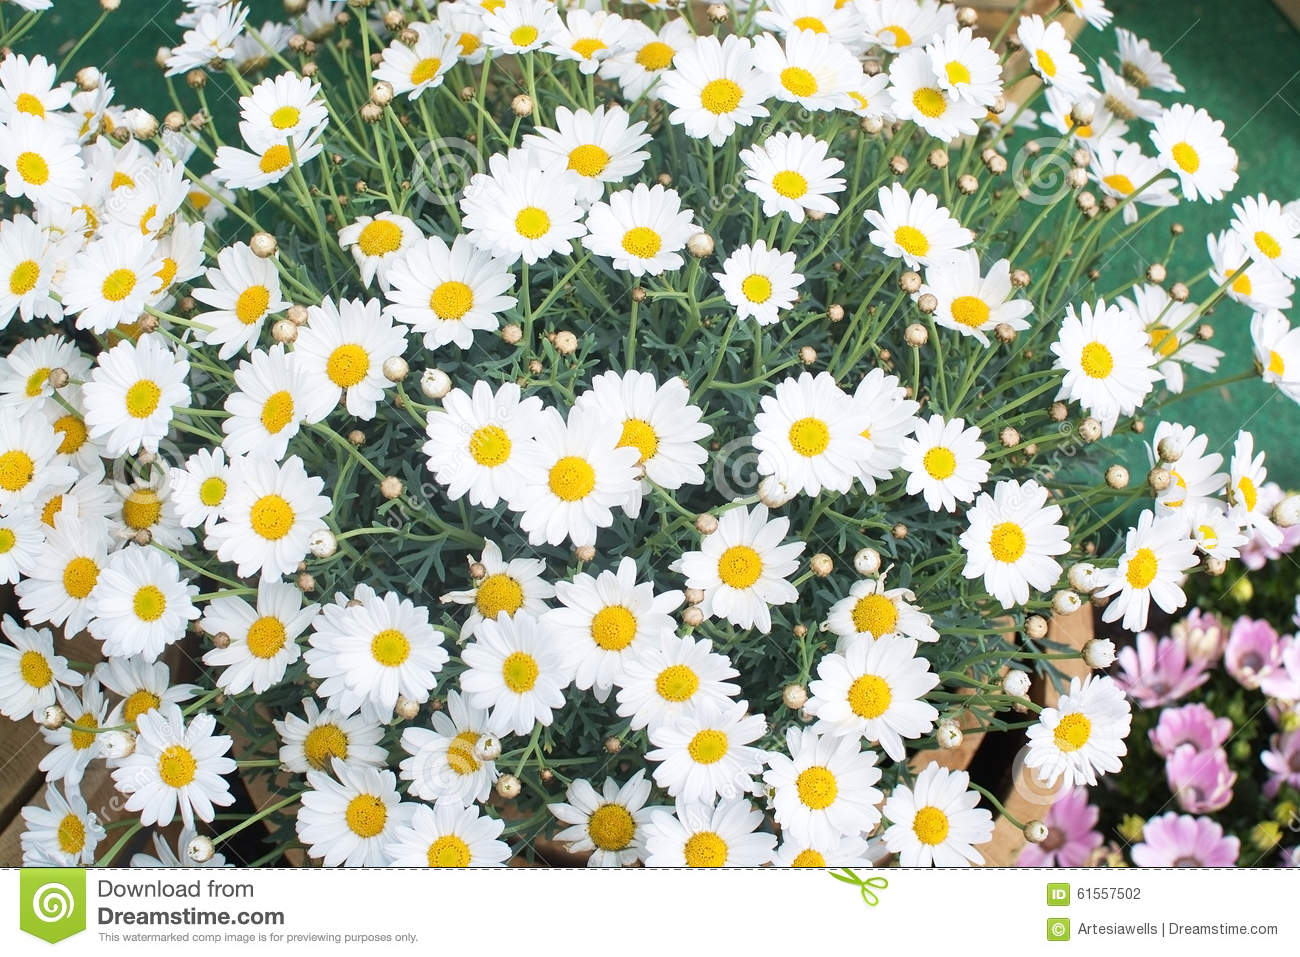 May flowers stock photos royalty free pictures white oxe eye daisy may flowers white oxe eye daisy or moon daisy mightylinksfo Choice Image